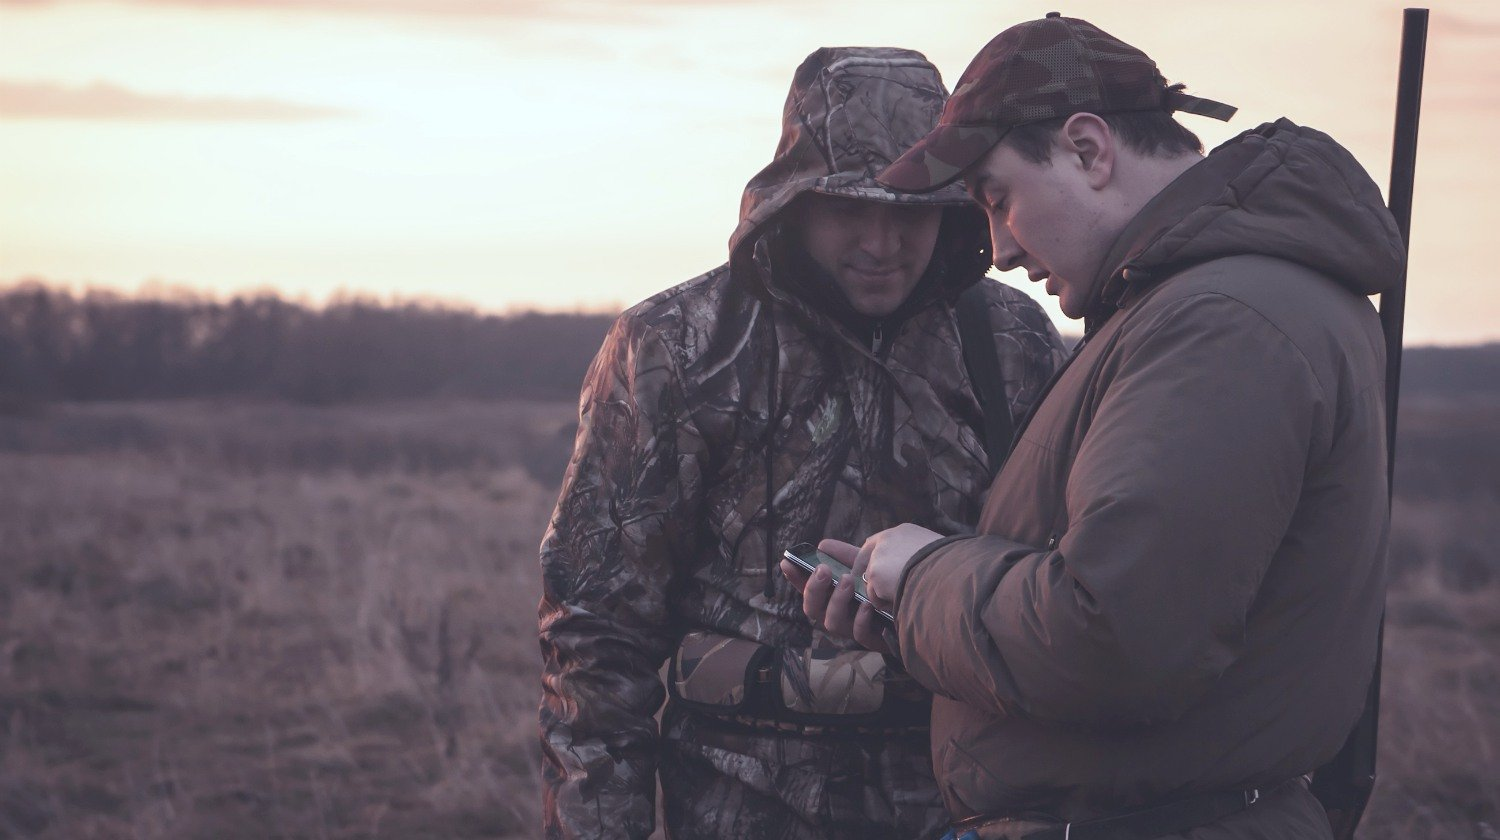 hunters using their smartphone | The Best Free Smartphone Apps For Your Firearms | free smartphone apps | phone app | Featured